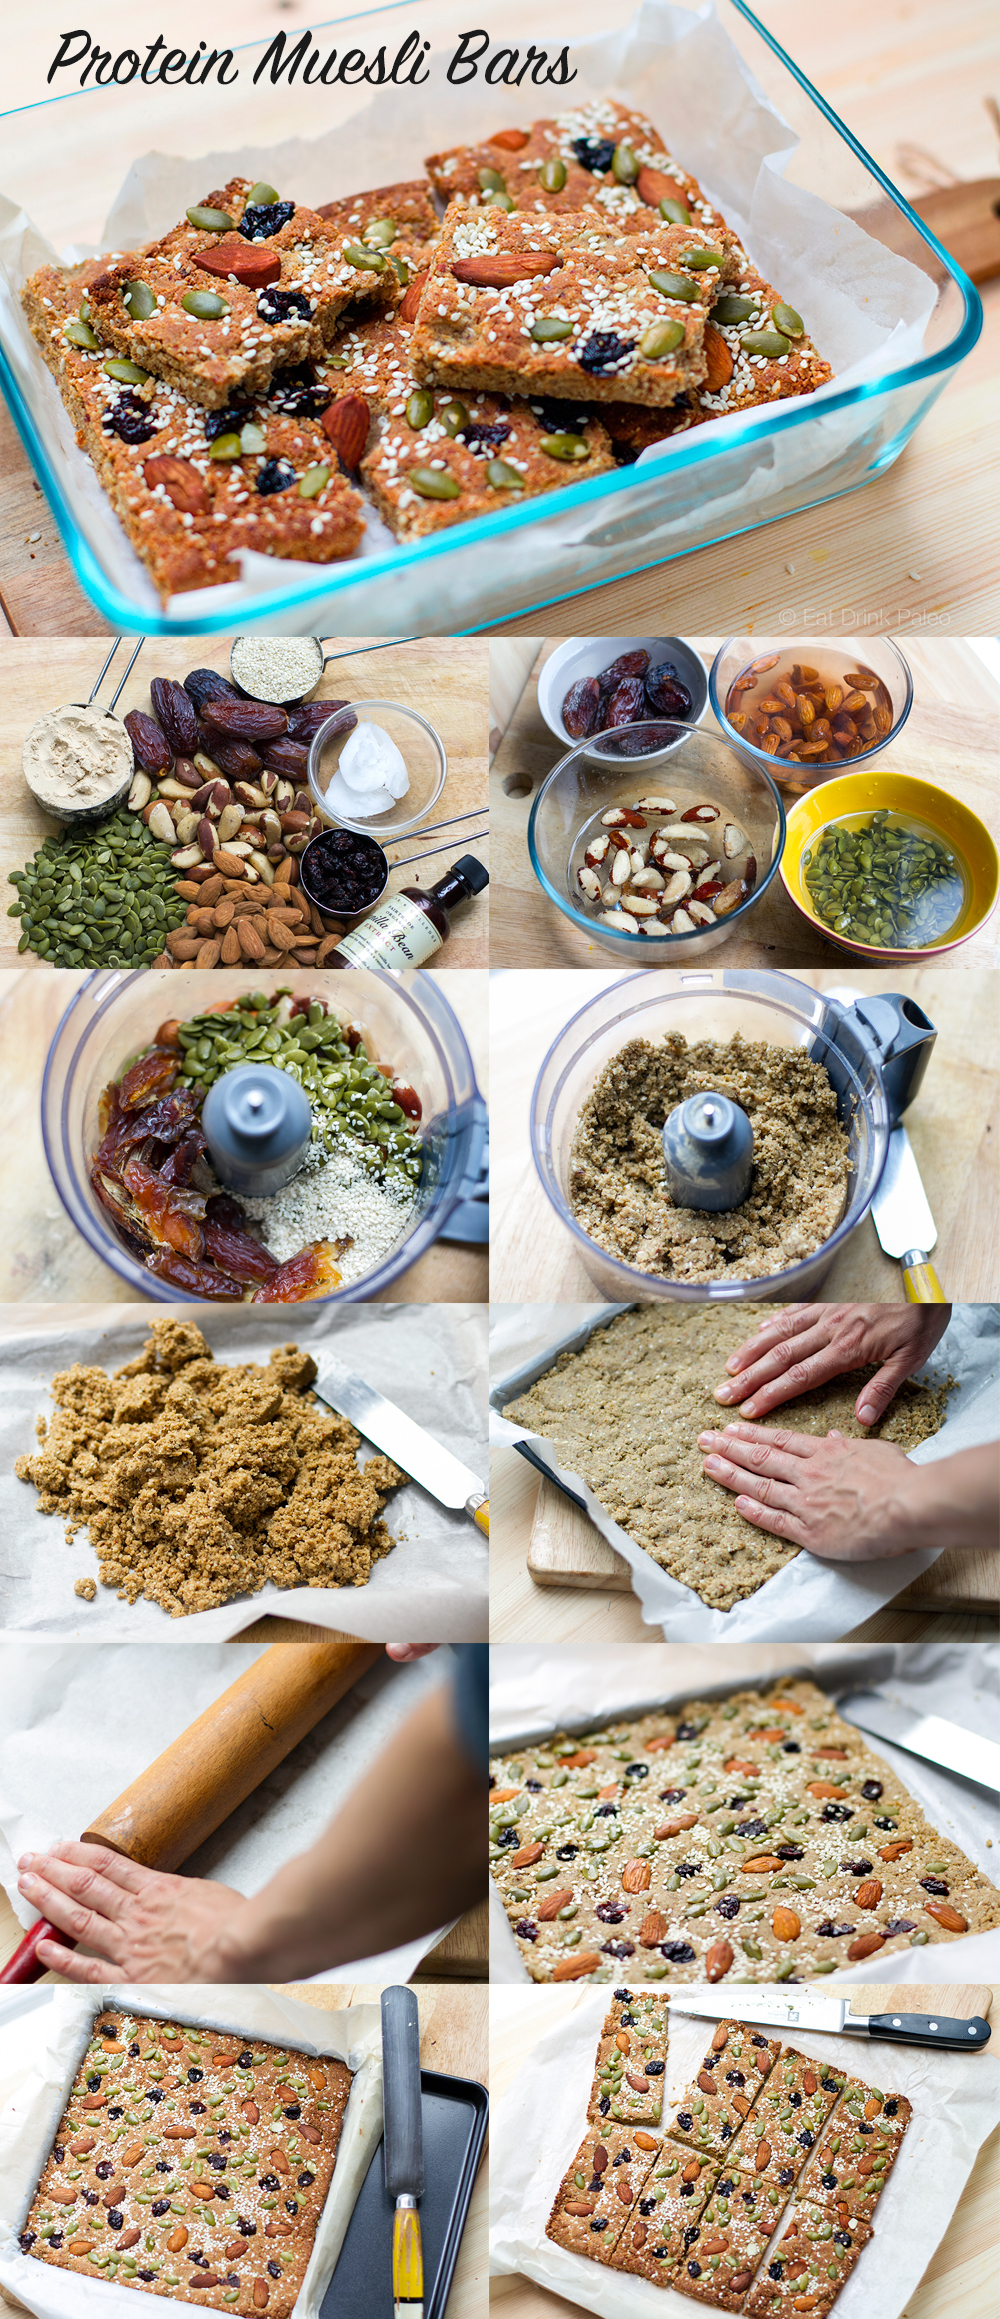 protein_muesli_bars_step_by_step_photos